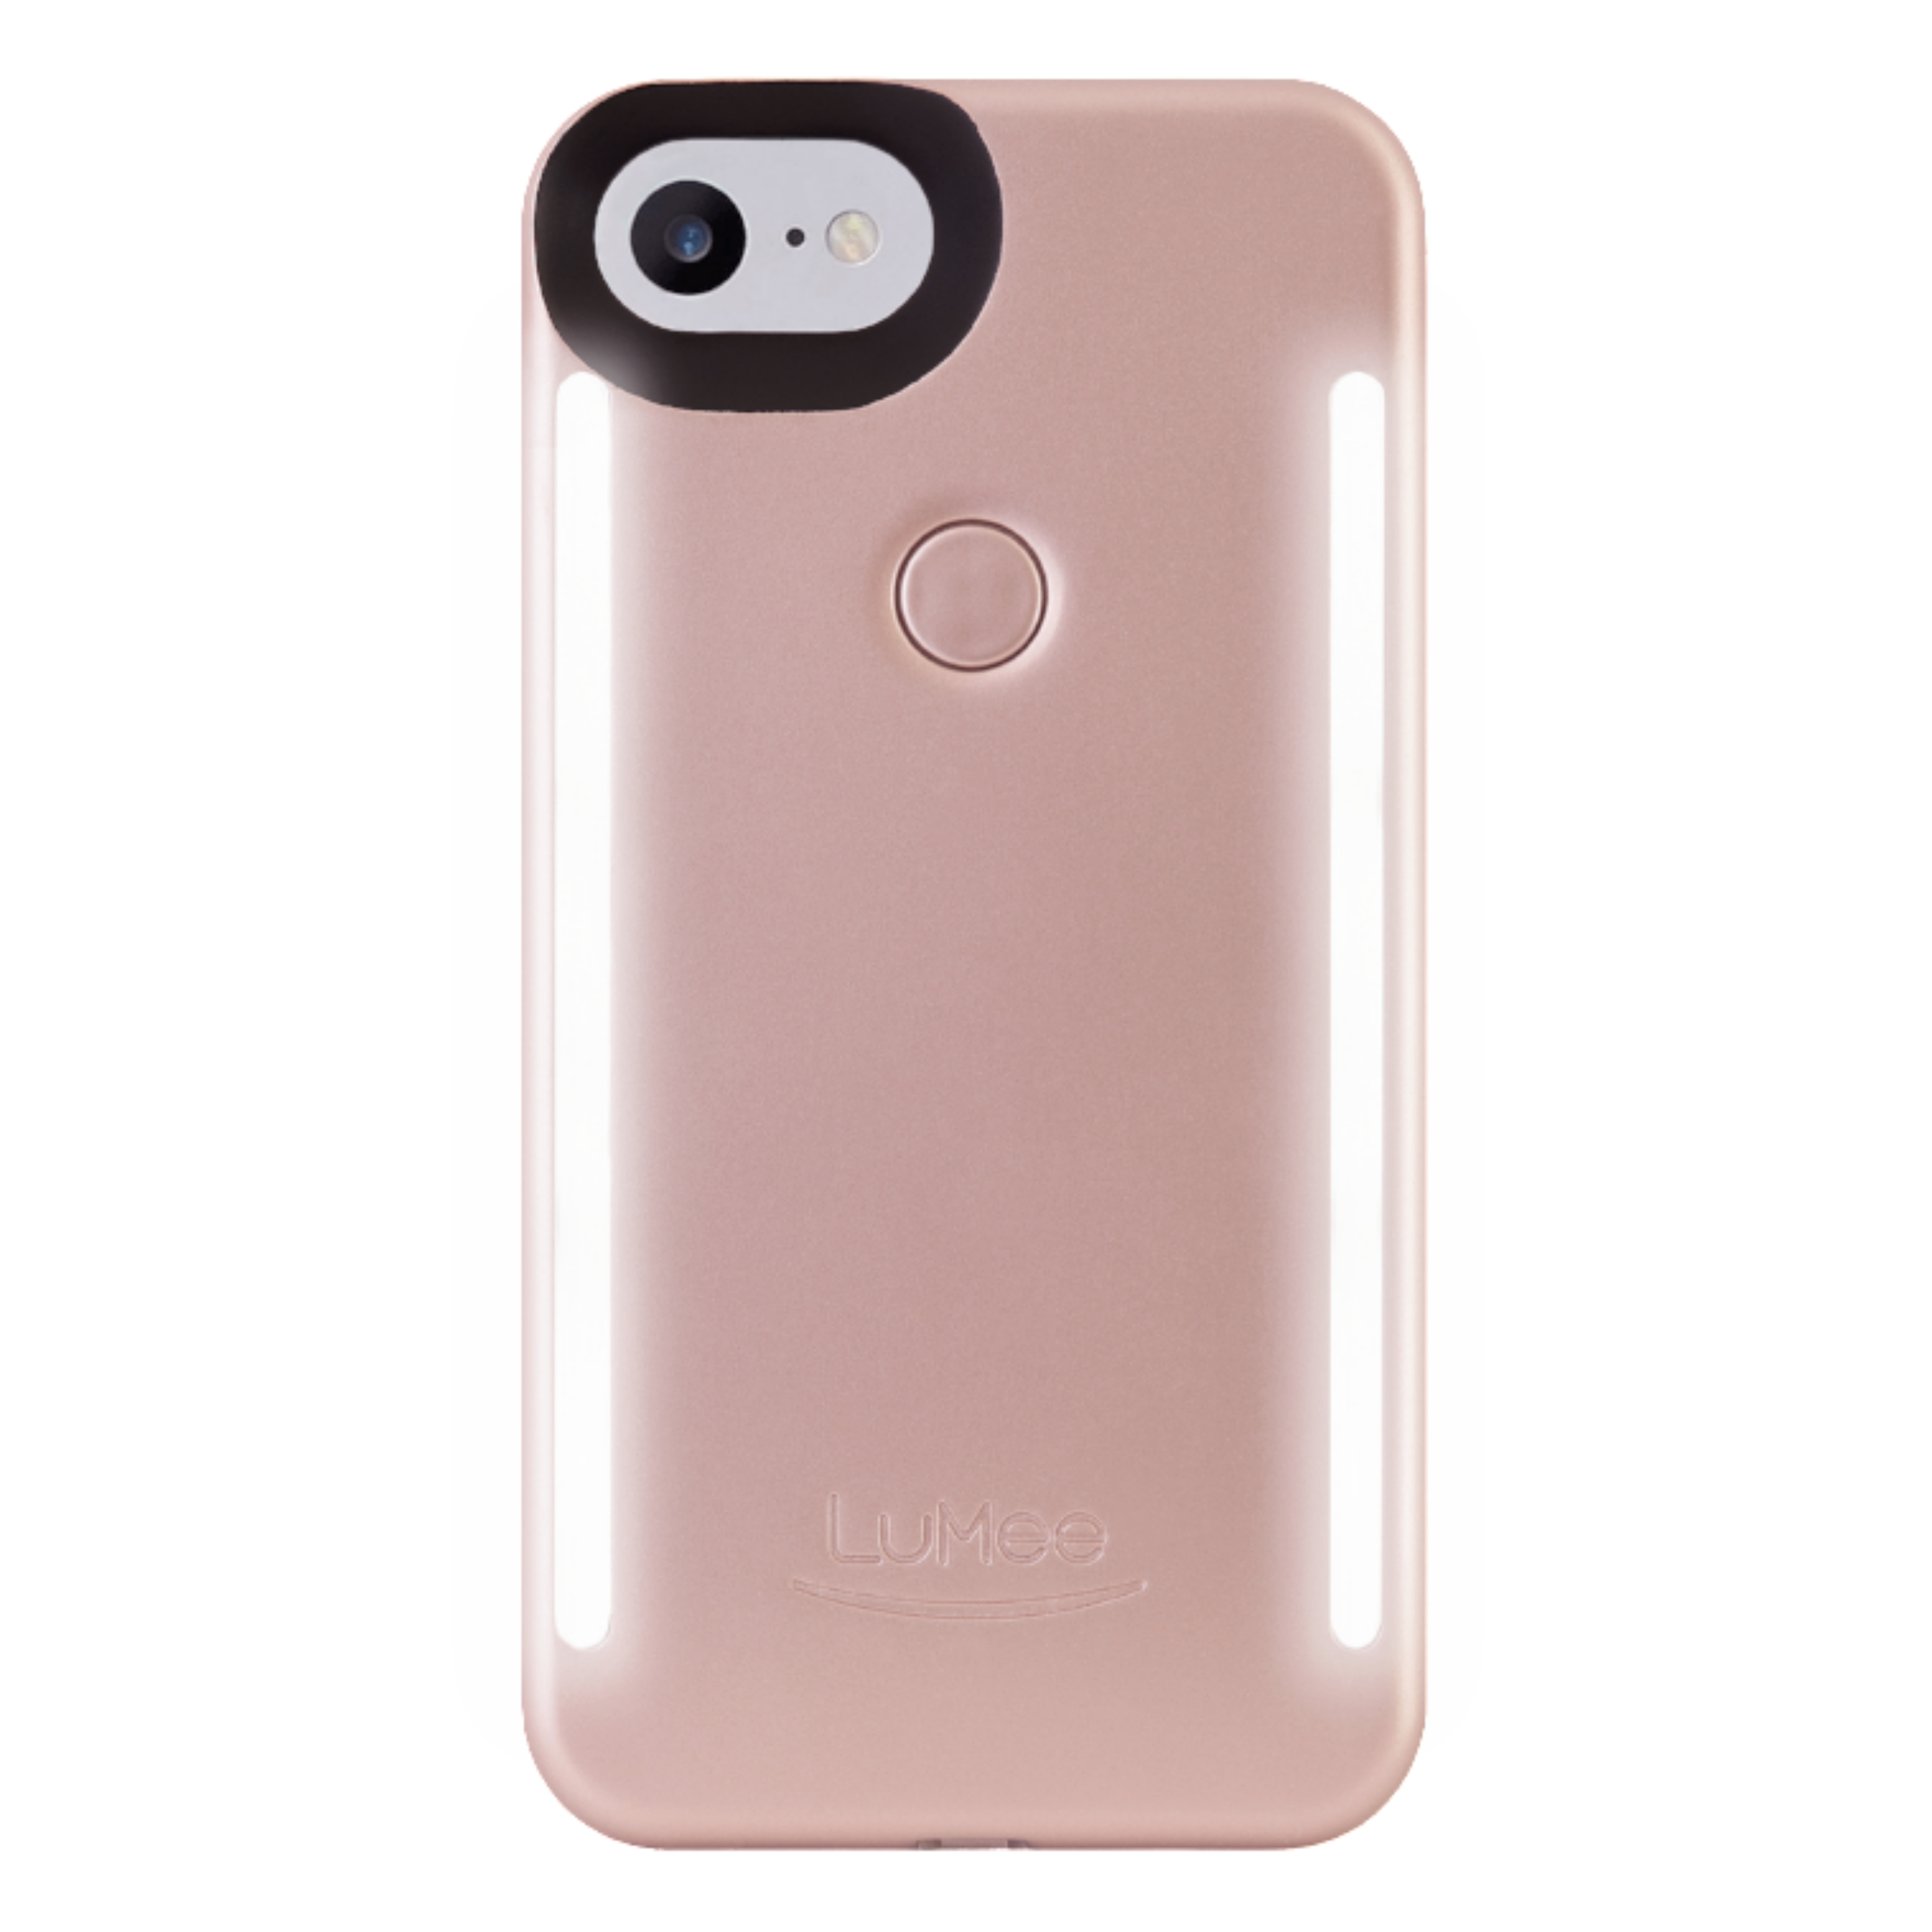 LuMee Duo LED Phone Selfie Case For iPhone 6/6S/7/8|Slim & Sleek|LD-IP7-ROSEMT|Gold Rose Matte